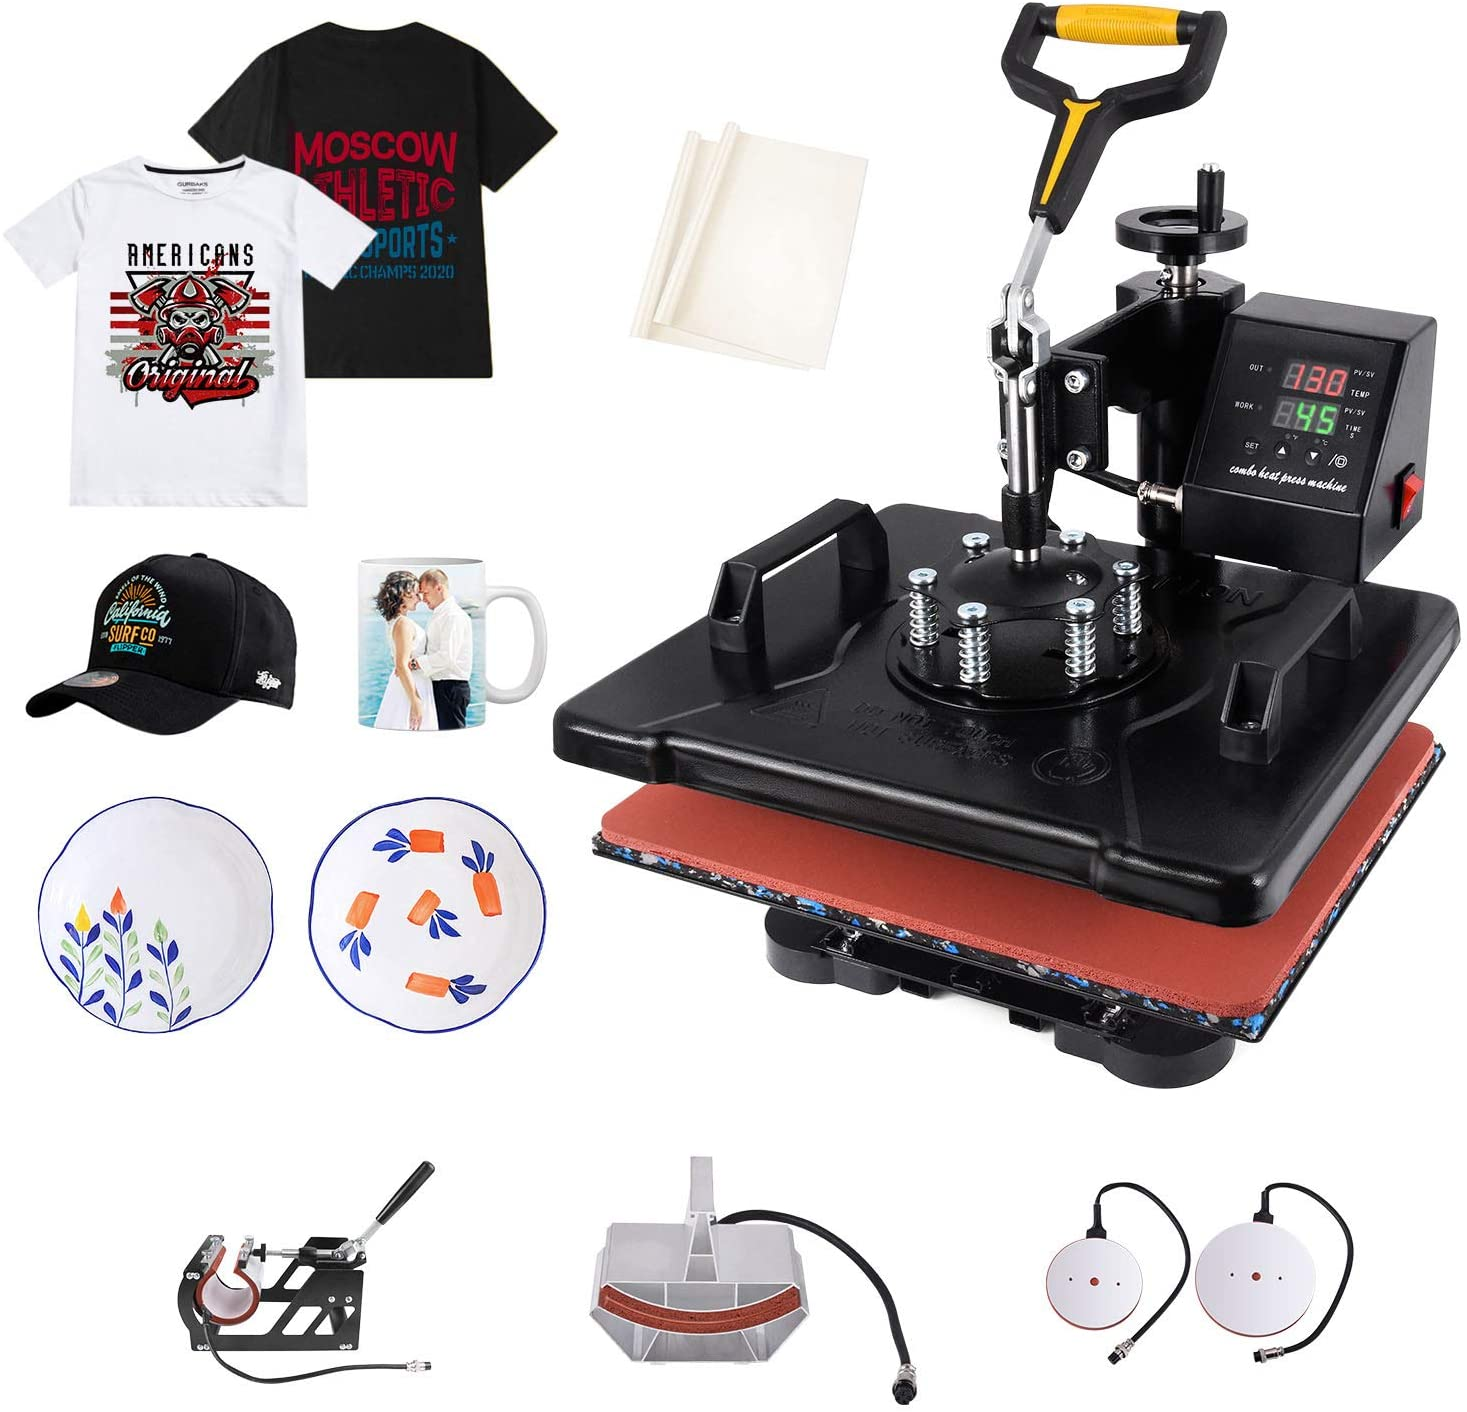 Slendor Heat Press 5 in 1 Heat Press 12x15 inch Machine